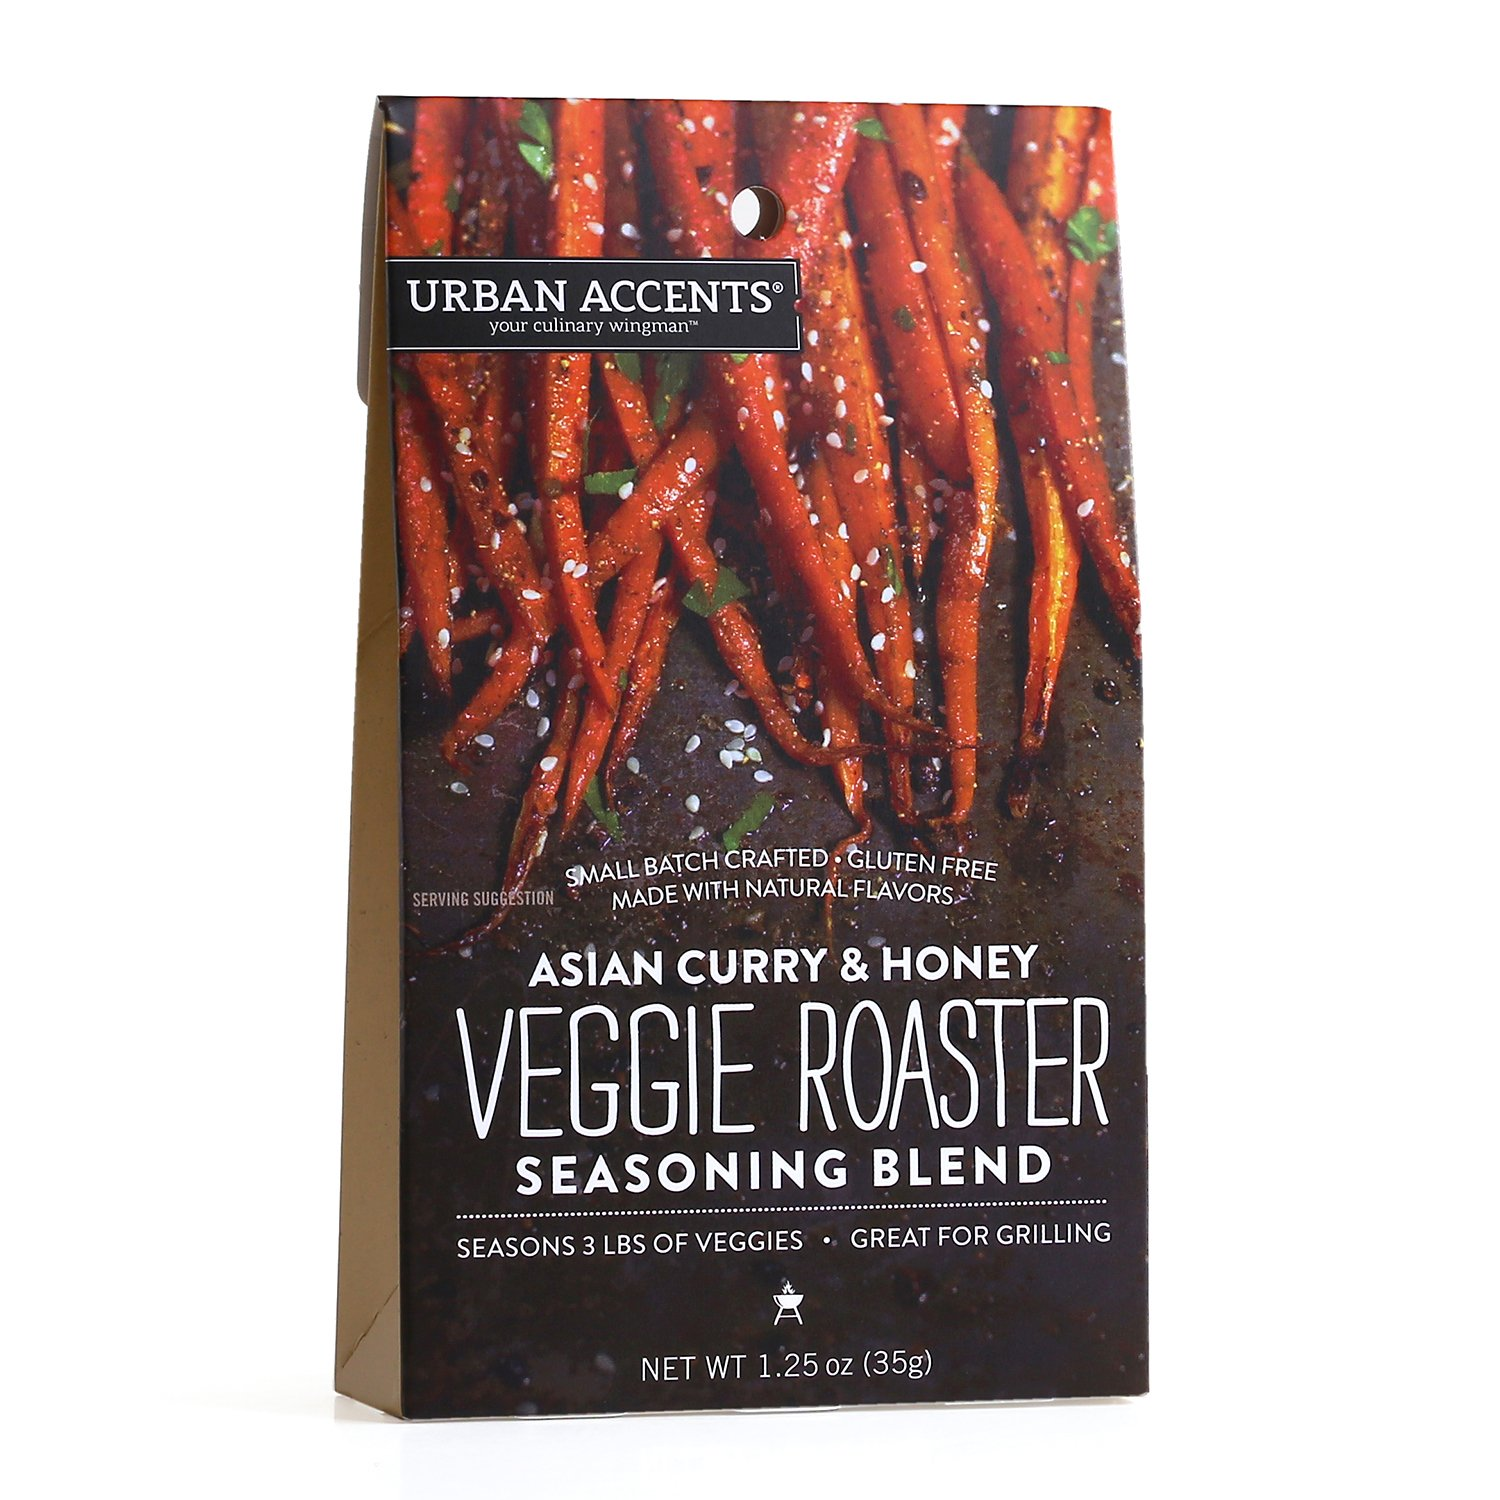 urban accents furniture. Asian Curry And Honey Veggie Roaster Seasoning Blend \u2013 Vegetable Spice Mix, Urban Accents 1.25 Furniture